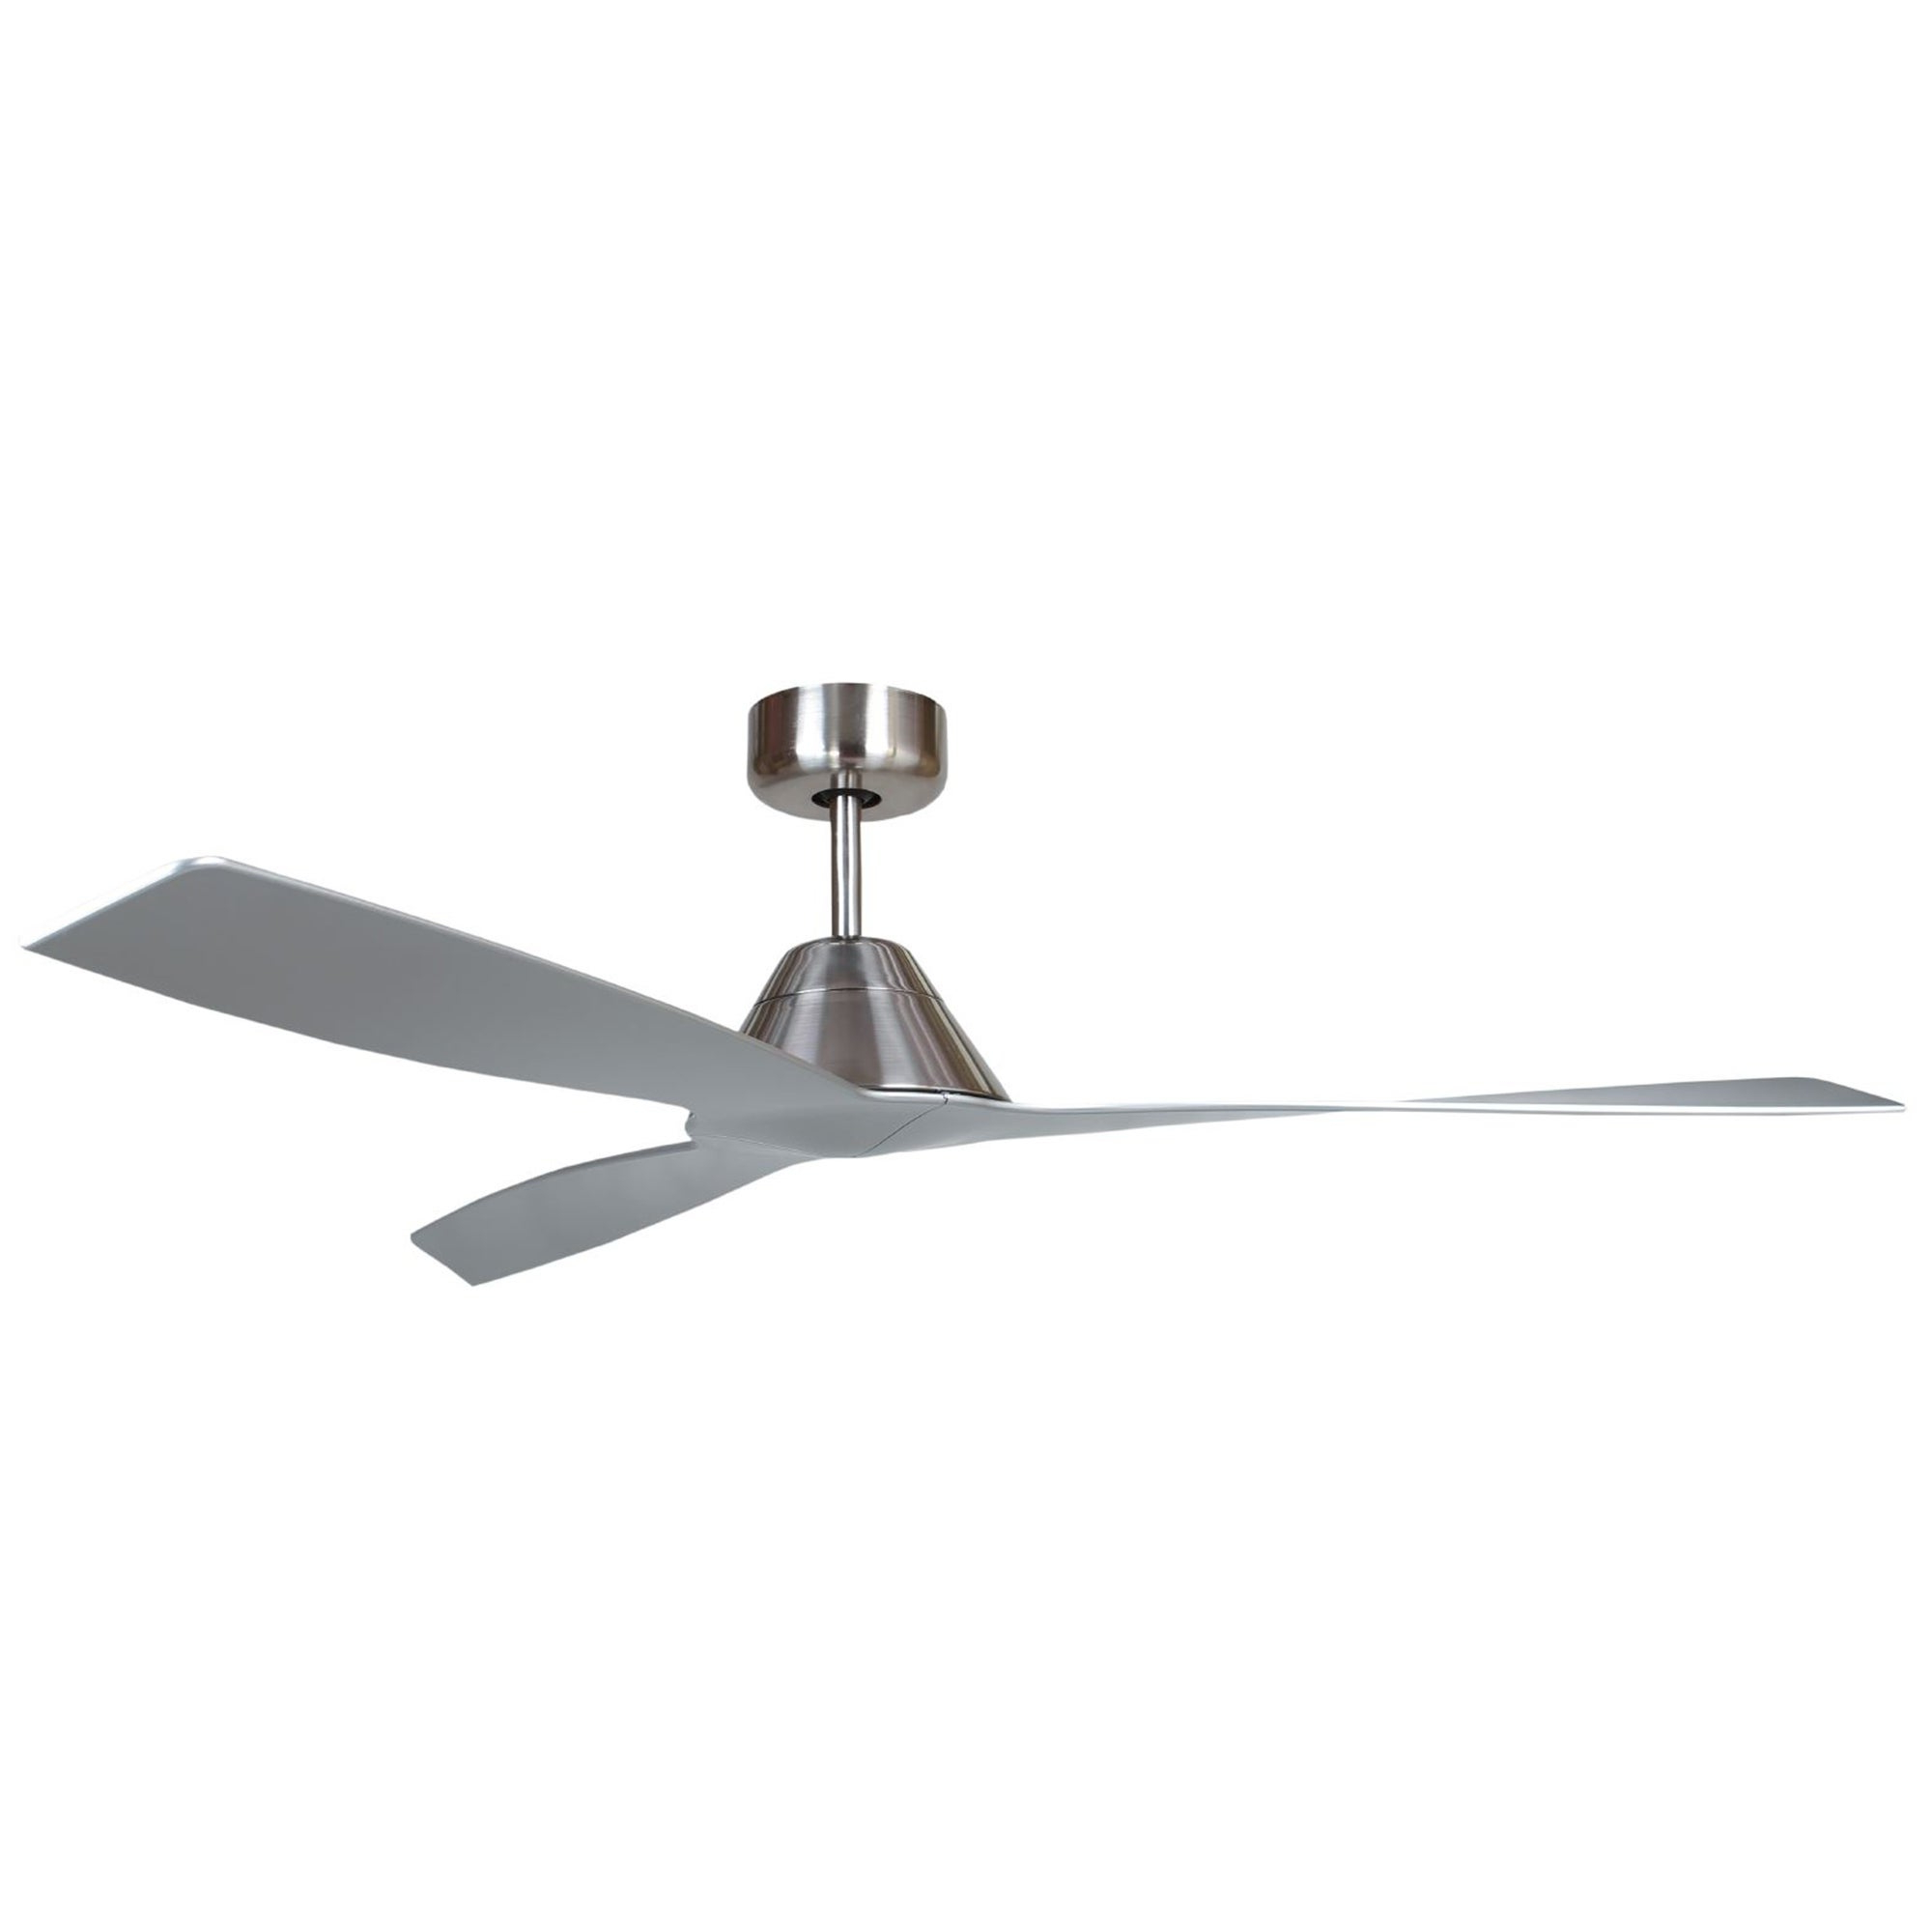 Trendy Embrace 3 Blade Ceiling Fans Intended For Bali1 Bn 3 Blade Ceiling Fan In Brushed Nickel Finish (View 13 of 20)